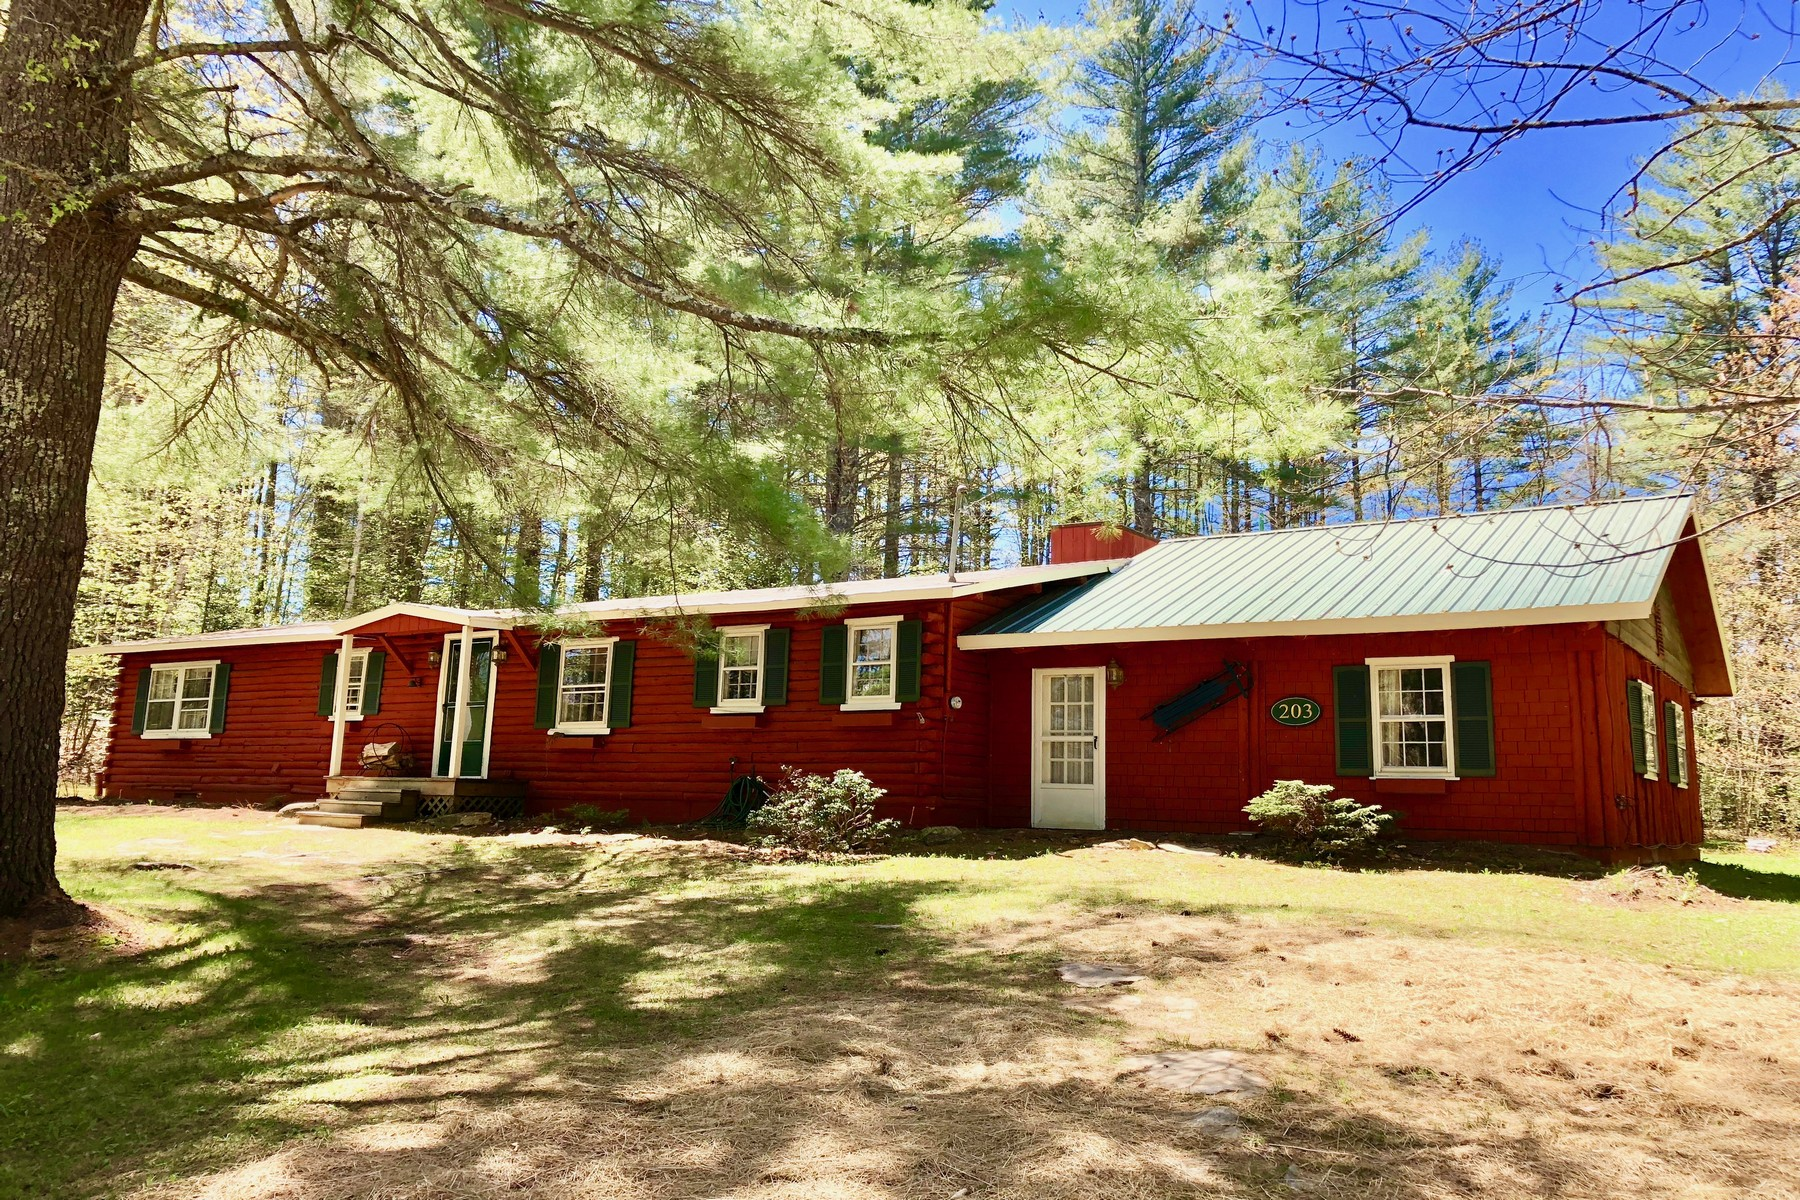 Single Family Home for Sale at Log Cabin in Ski Country 203 Landgrove Rd Londonderry, Vermont 05148 United States